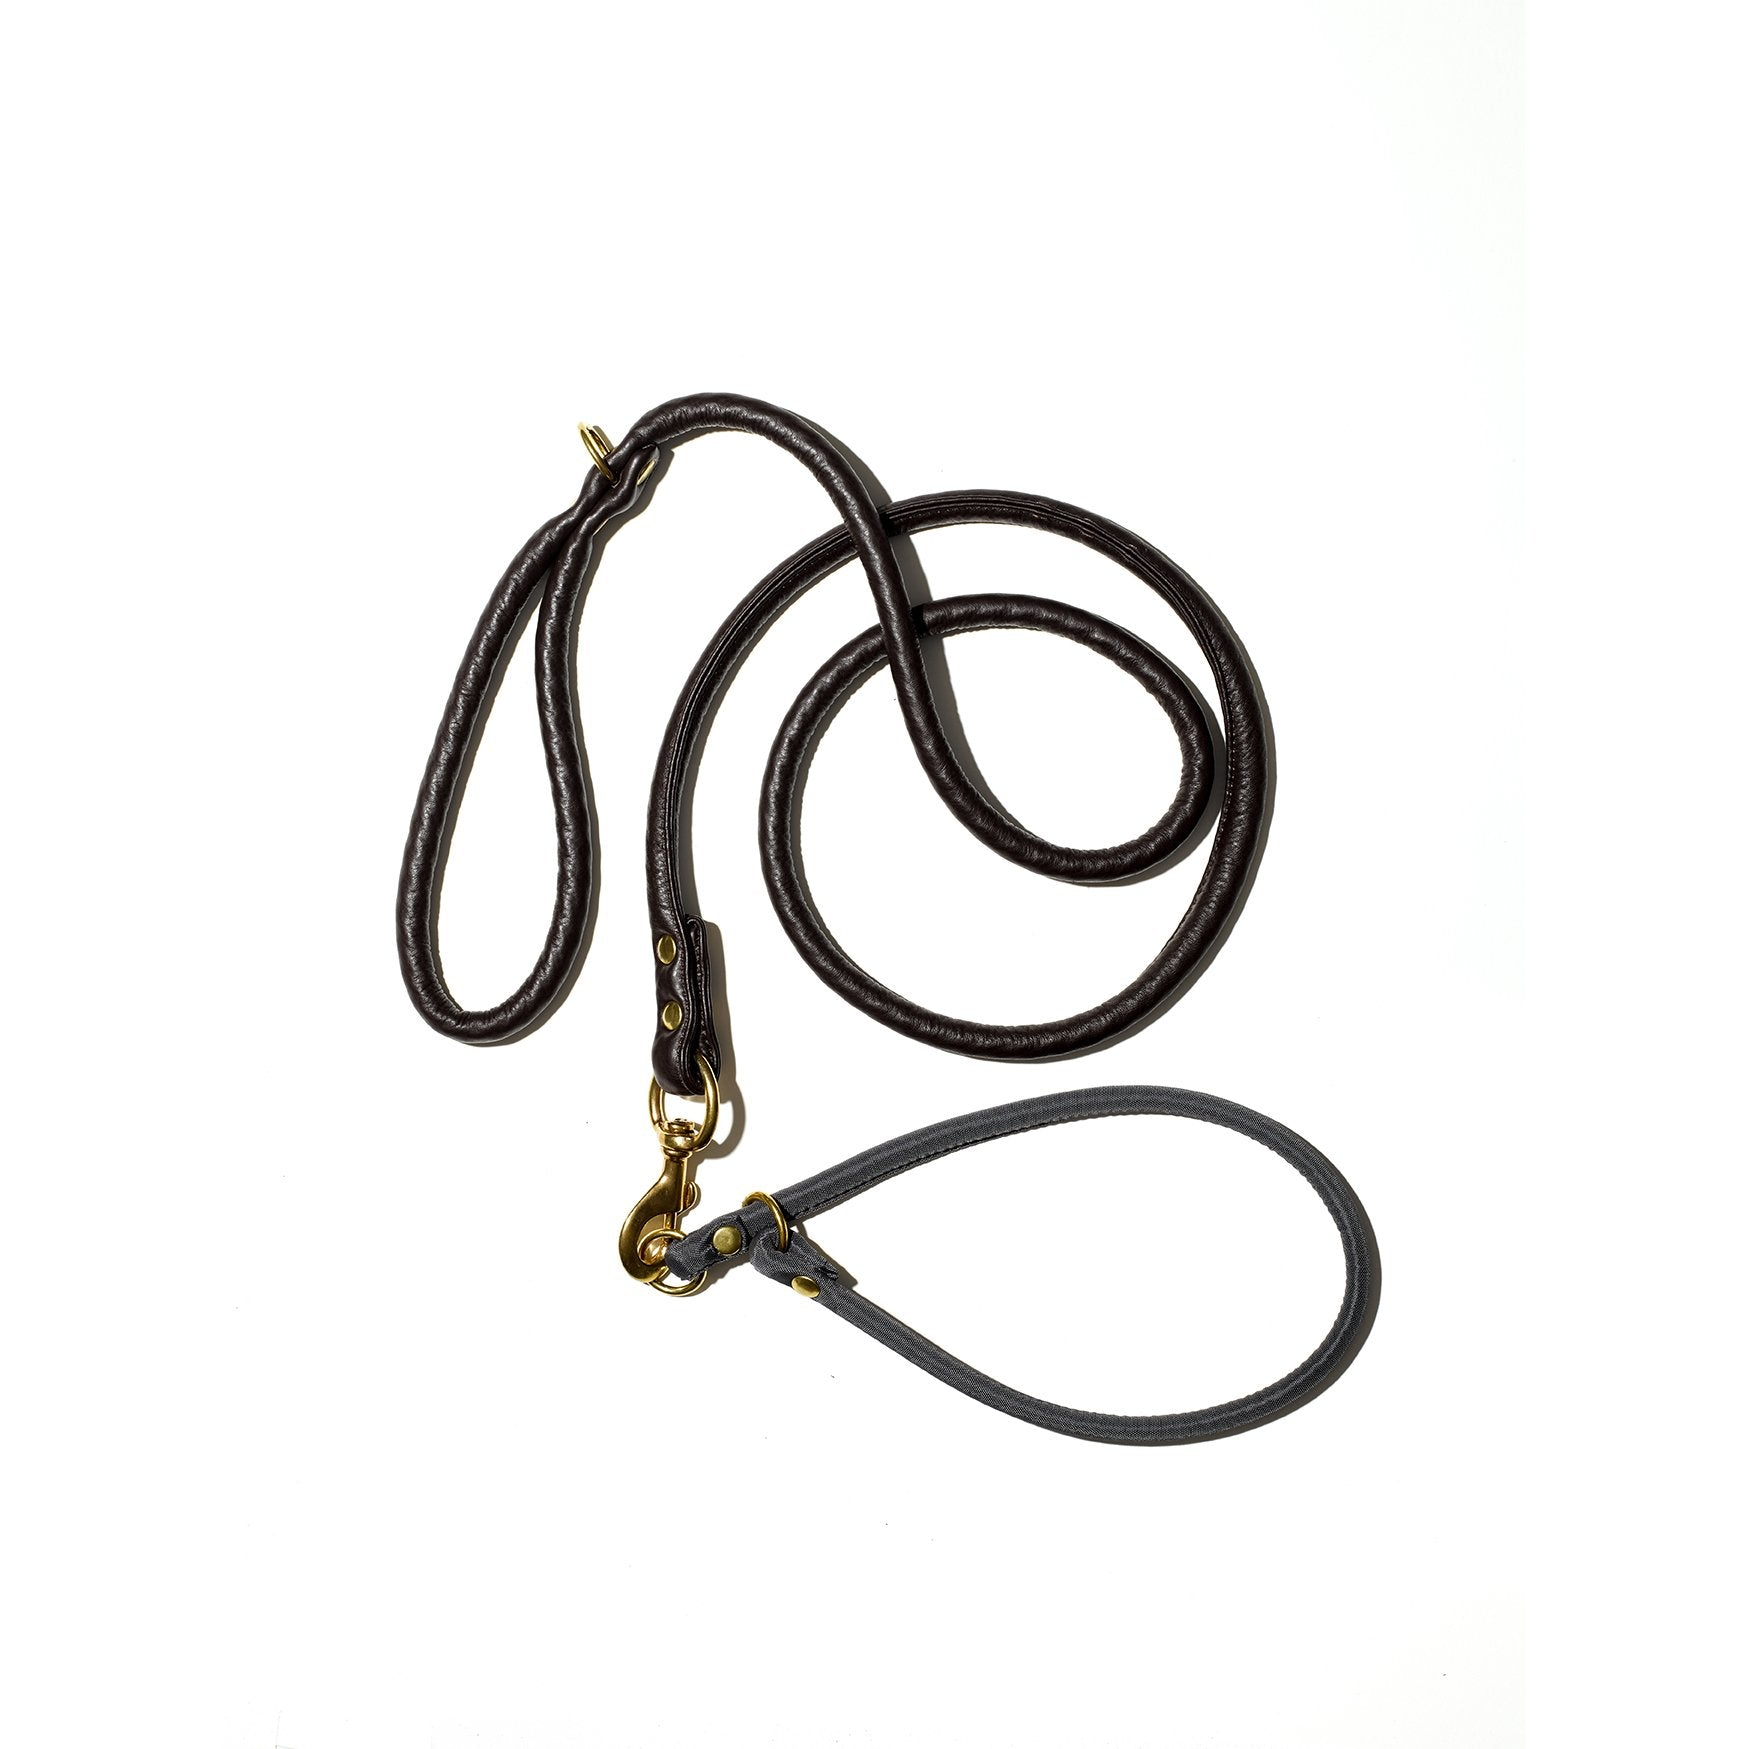 Mr.-Dog-Leather-Leash